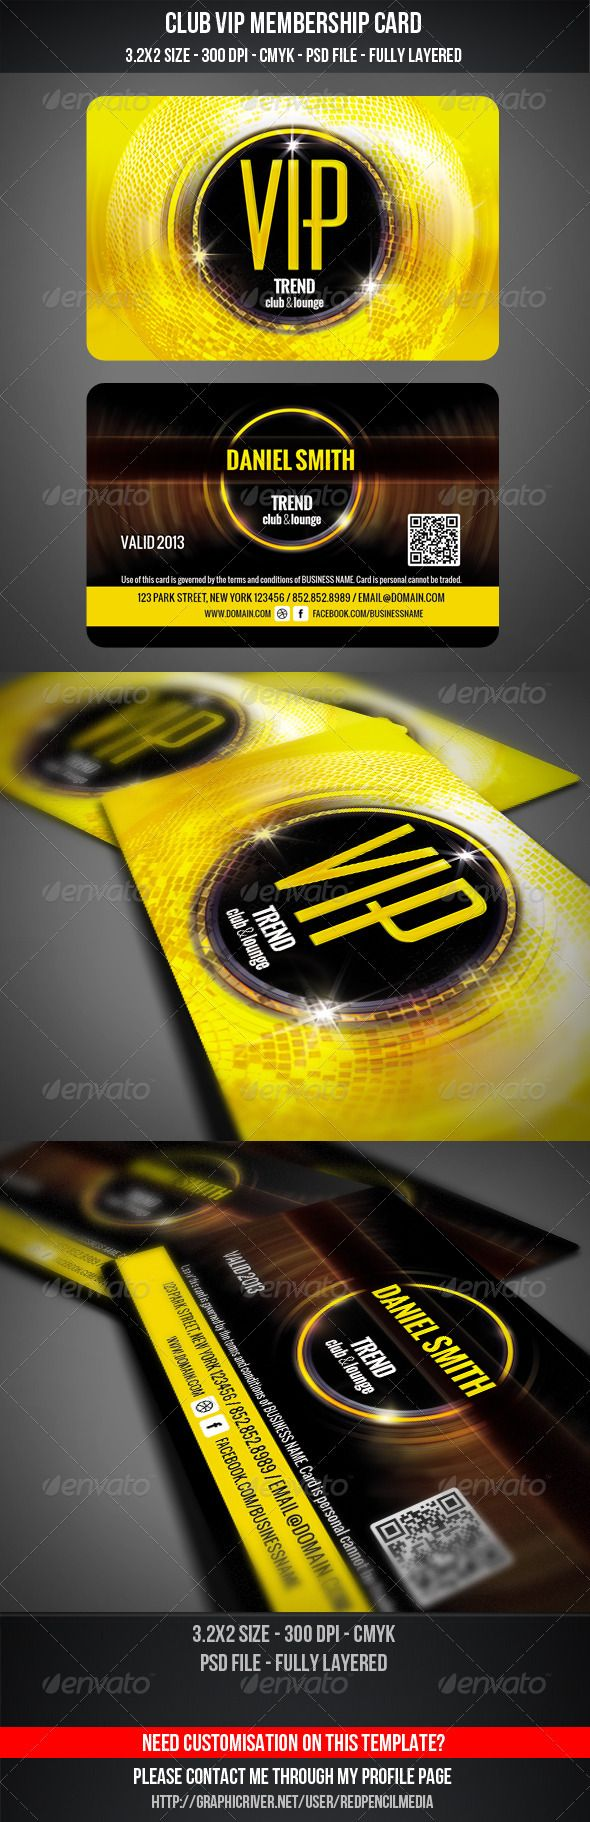 club membership card template – Club Membership Template